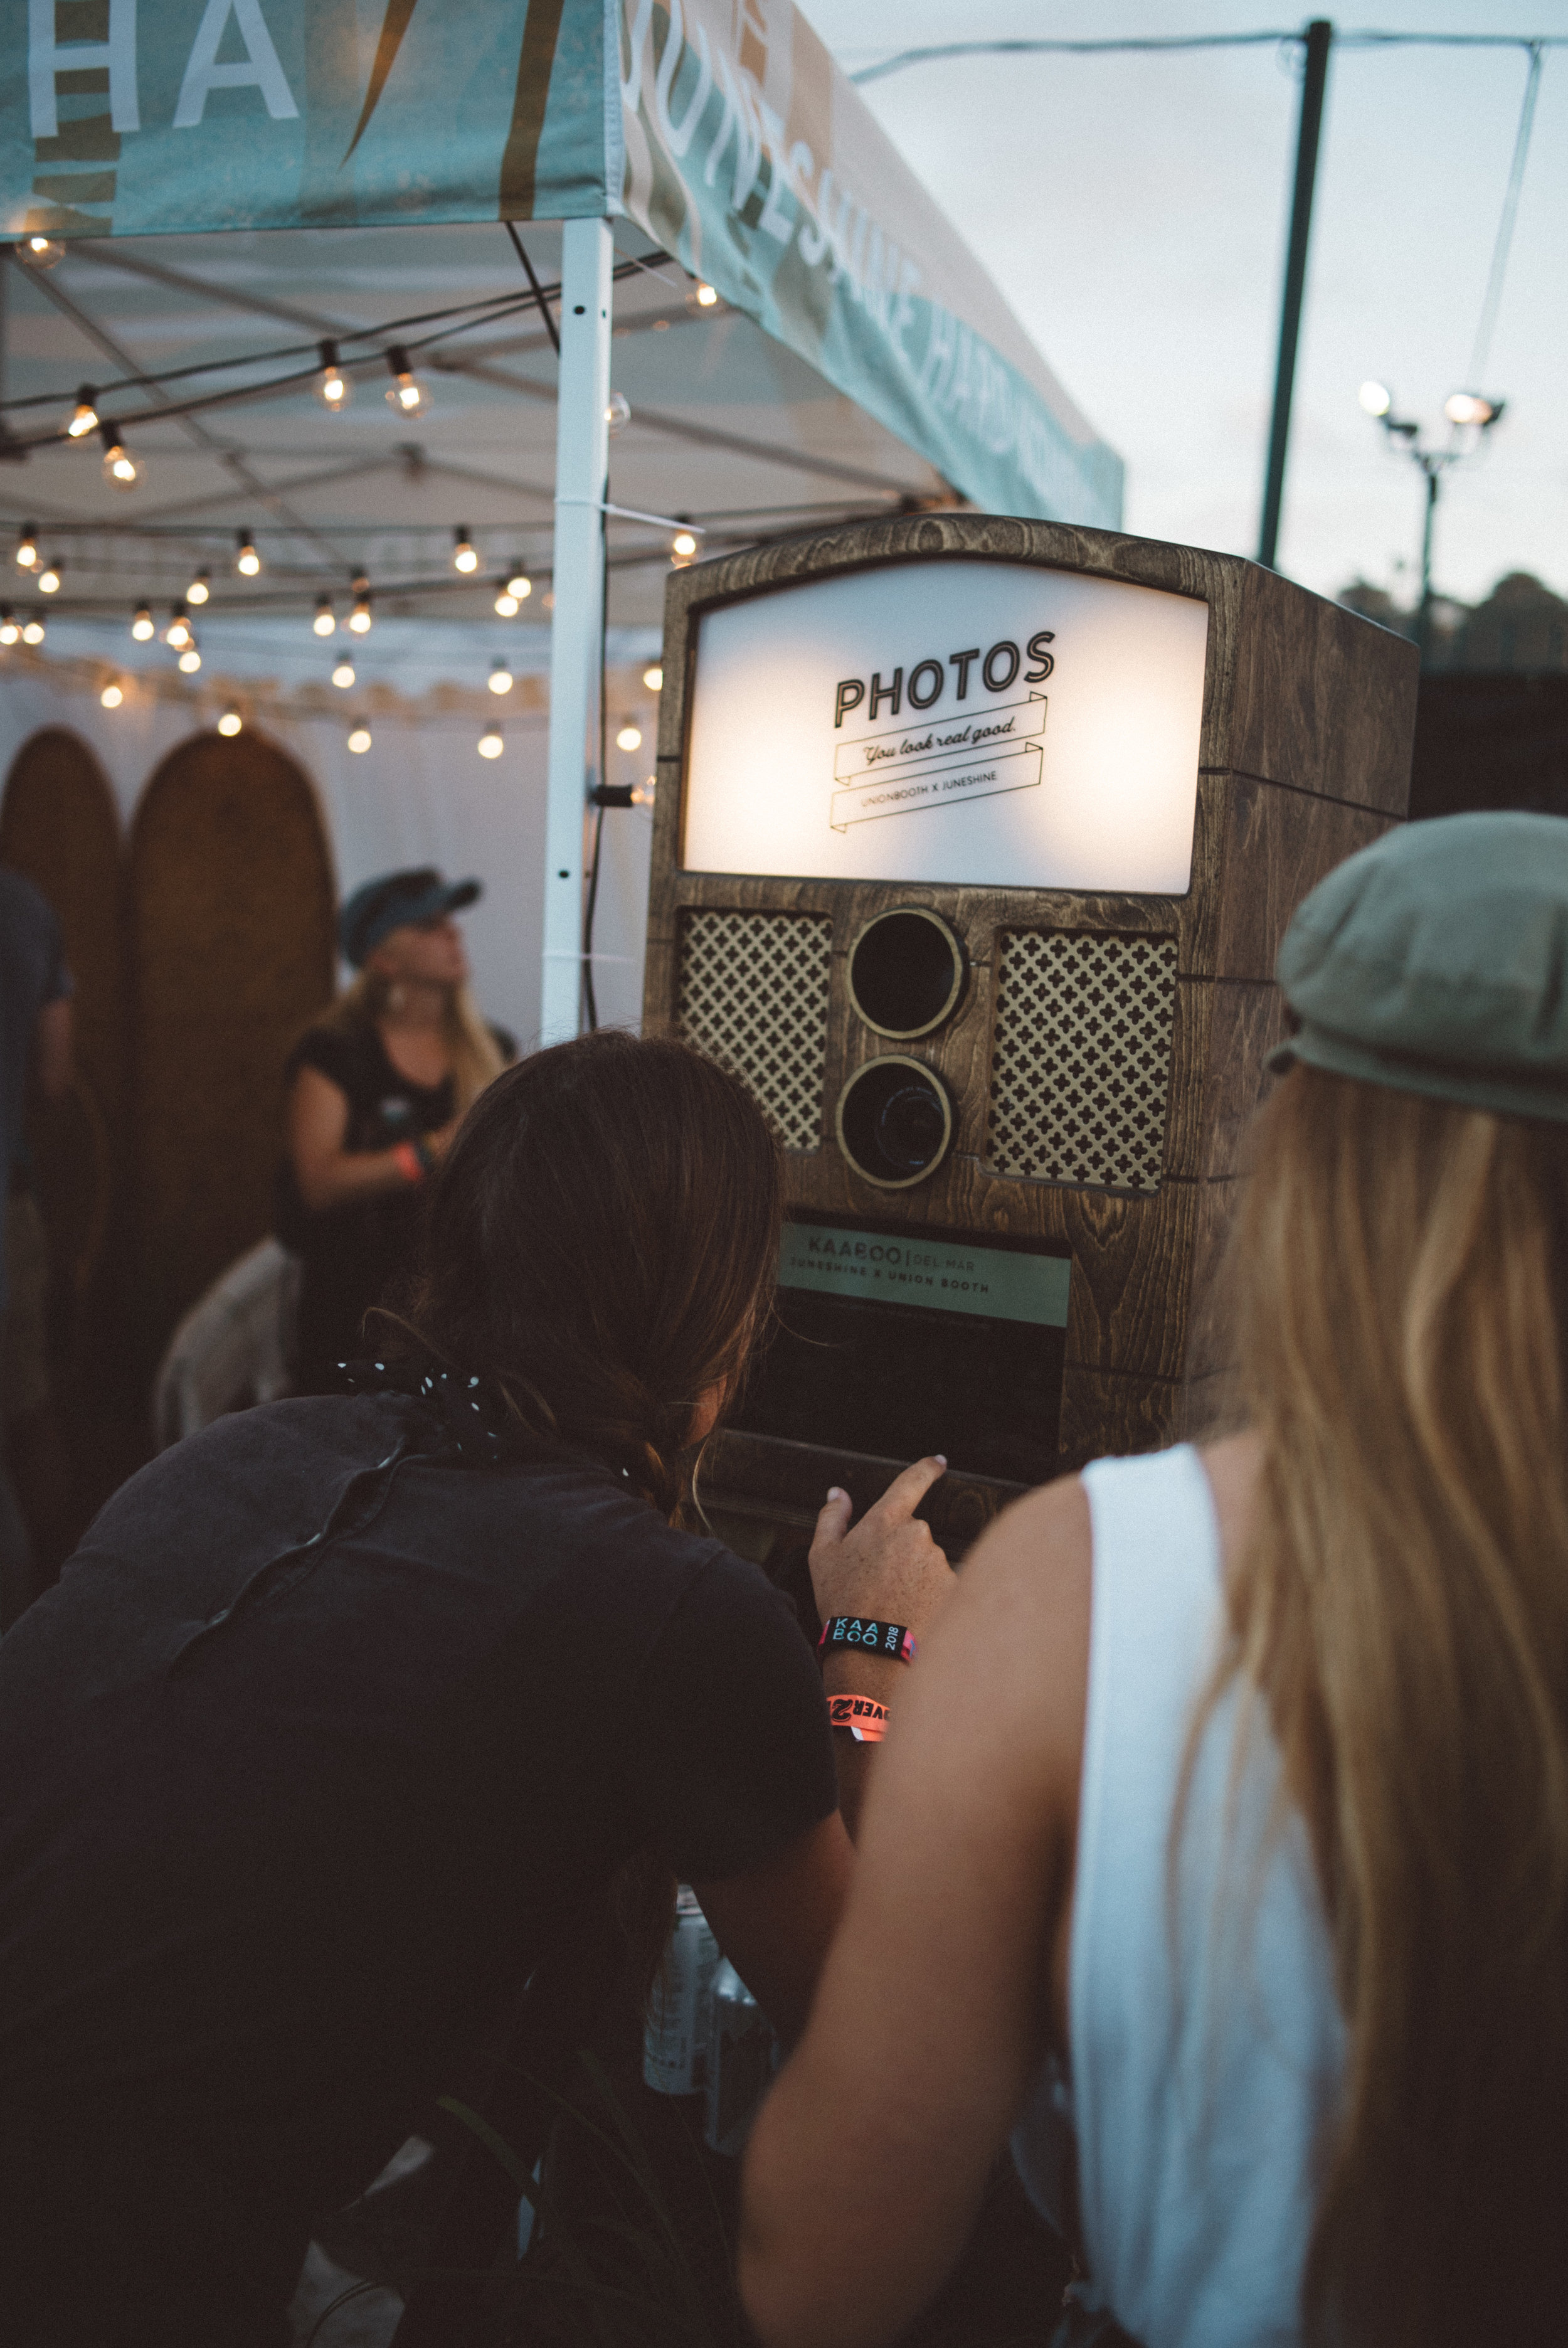 Vintage style photo booth rental San Diego | Hawthorne photo booth for rental and purchase by Union Booth